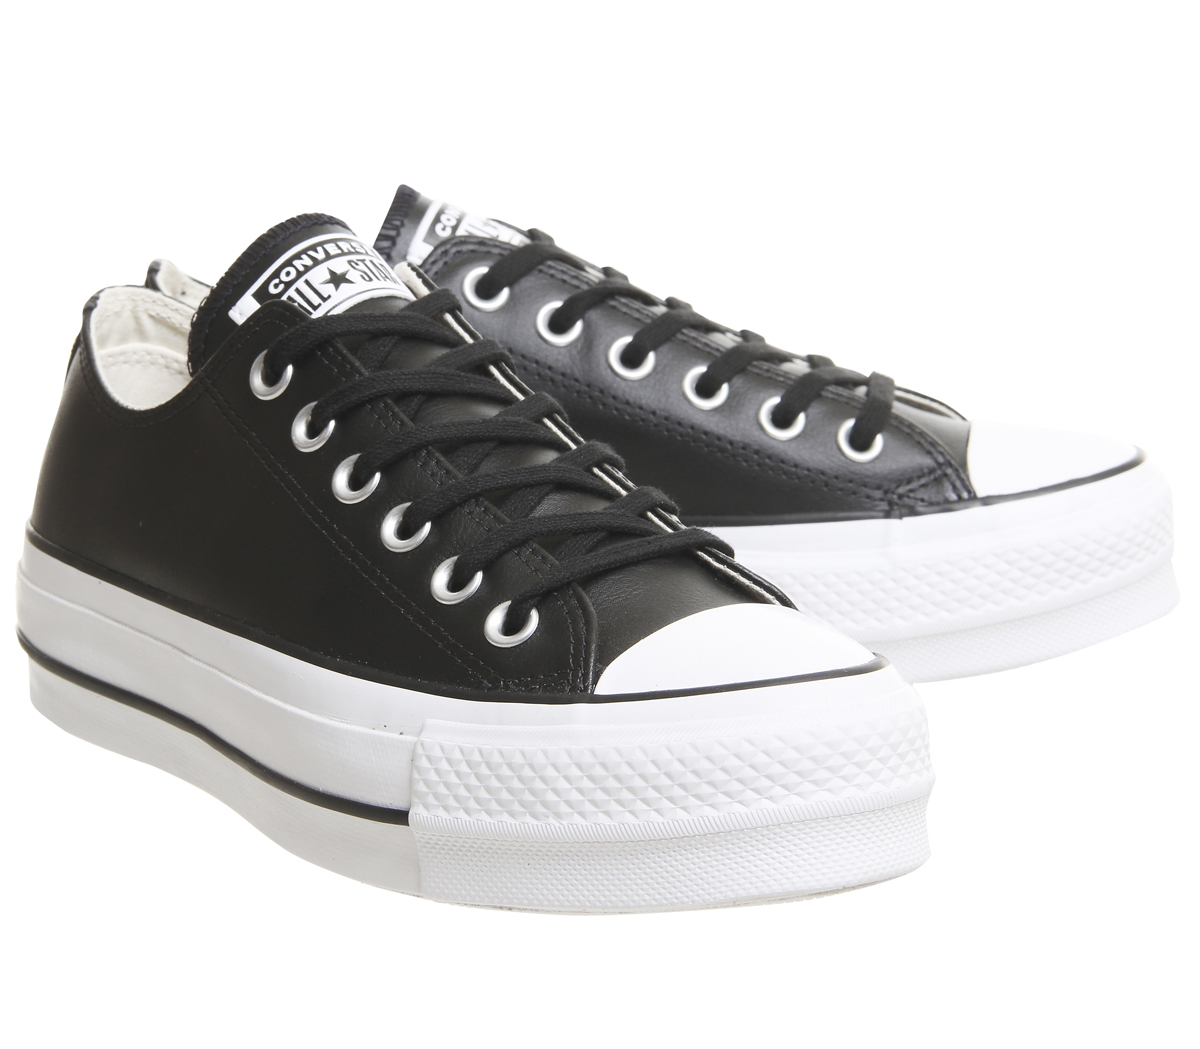 sneakers donna converse in pelle